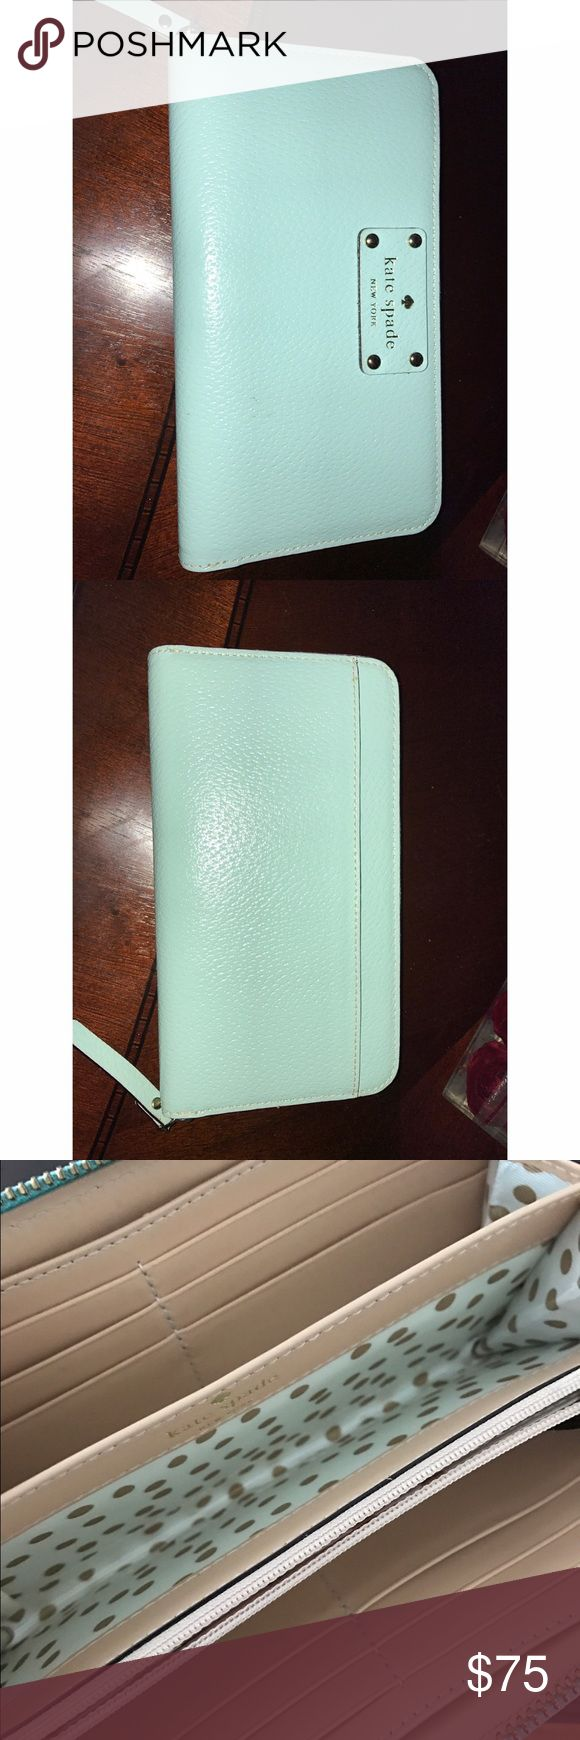 """Tiffany Blue Kate Spade ♠️ Zip-Around Wallet A beautiful boar skin leather wallet in robin egg blue with many great features. 12 credit card slots, a center zip pocket, 2 full length bill slip pockets, 2 large expandable pockets, can easily hold a cell phone. Measures: 8"""" (W) X 4""""(H) X 2""""(D) kate spade Bags Wallets"""